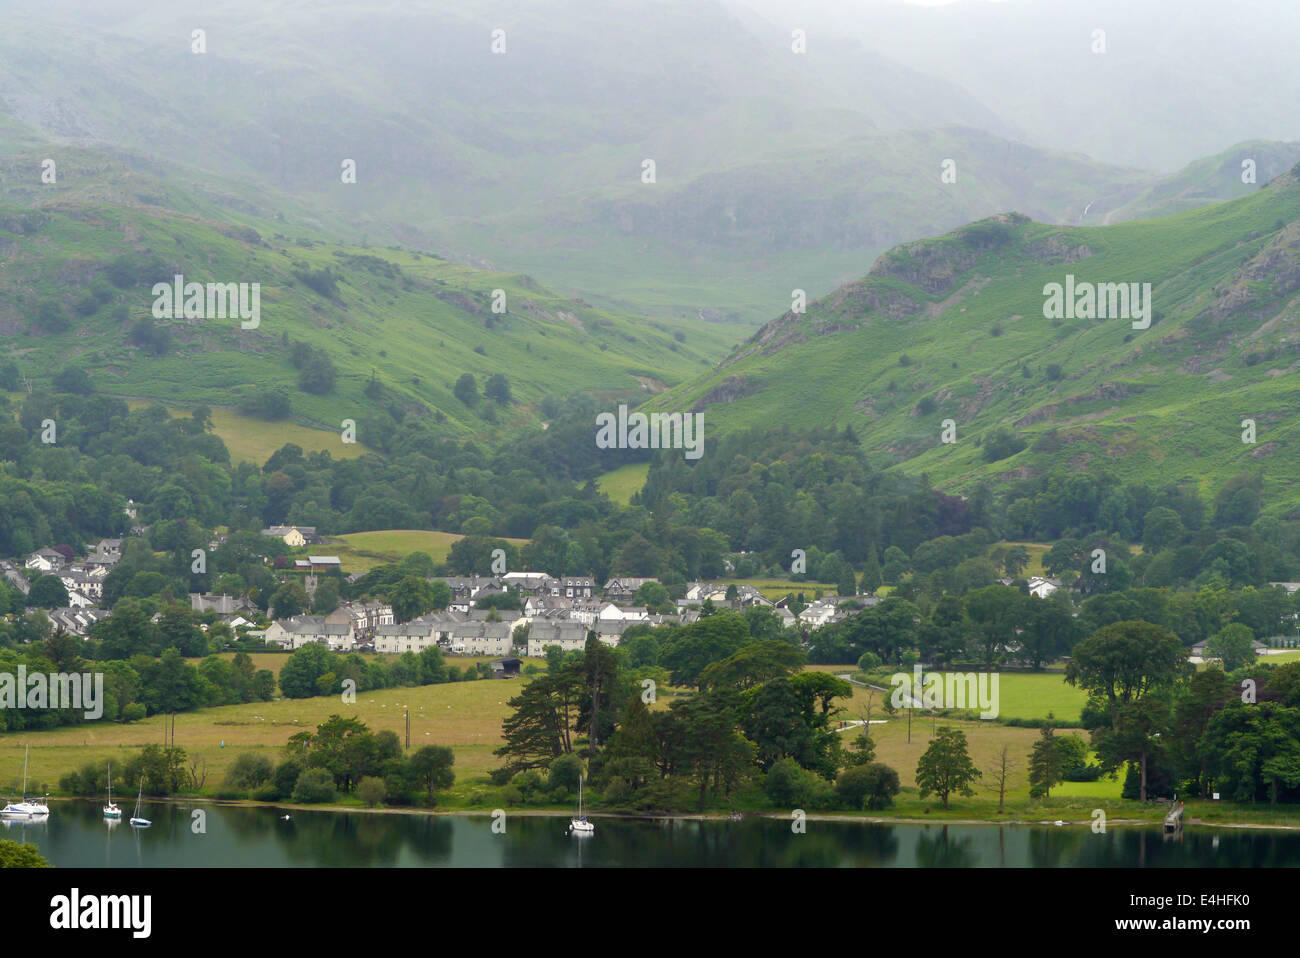 Coniston water, lake district, cumbria. Sailing boats, Coniston village and Old Man of Coniston mountain - Stock Image